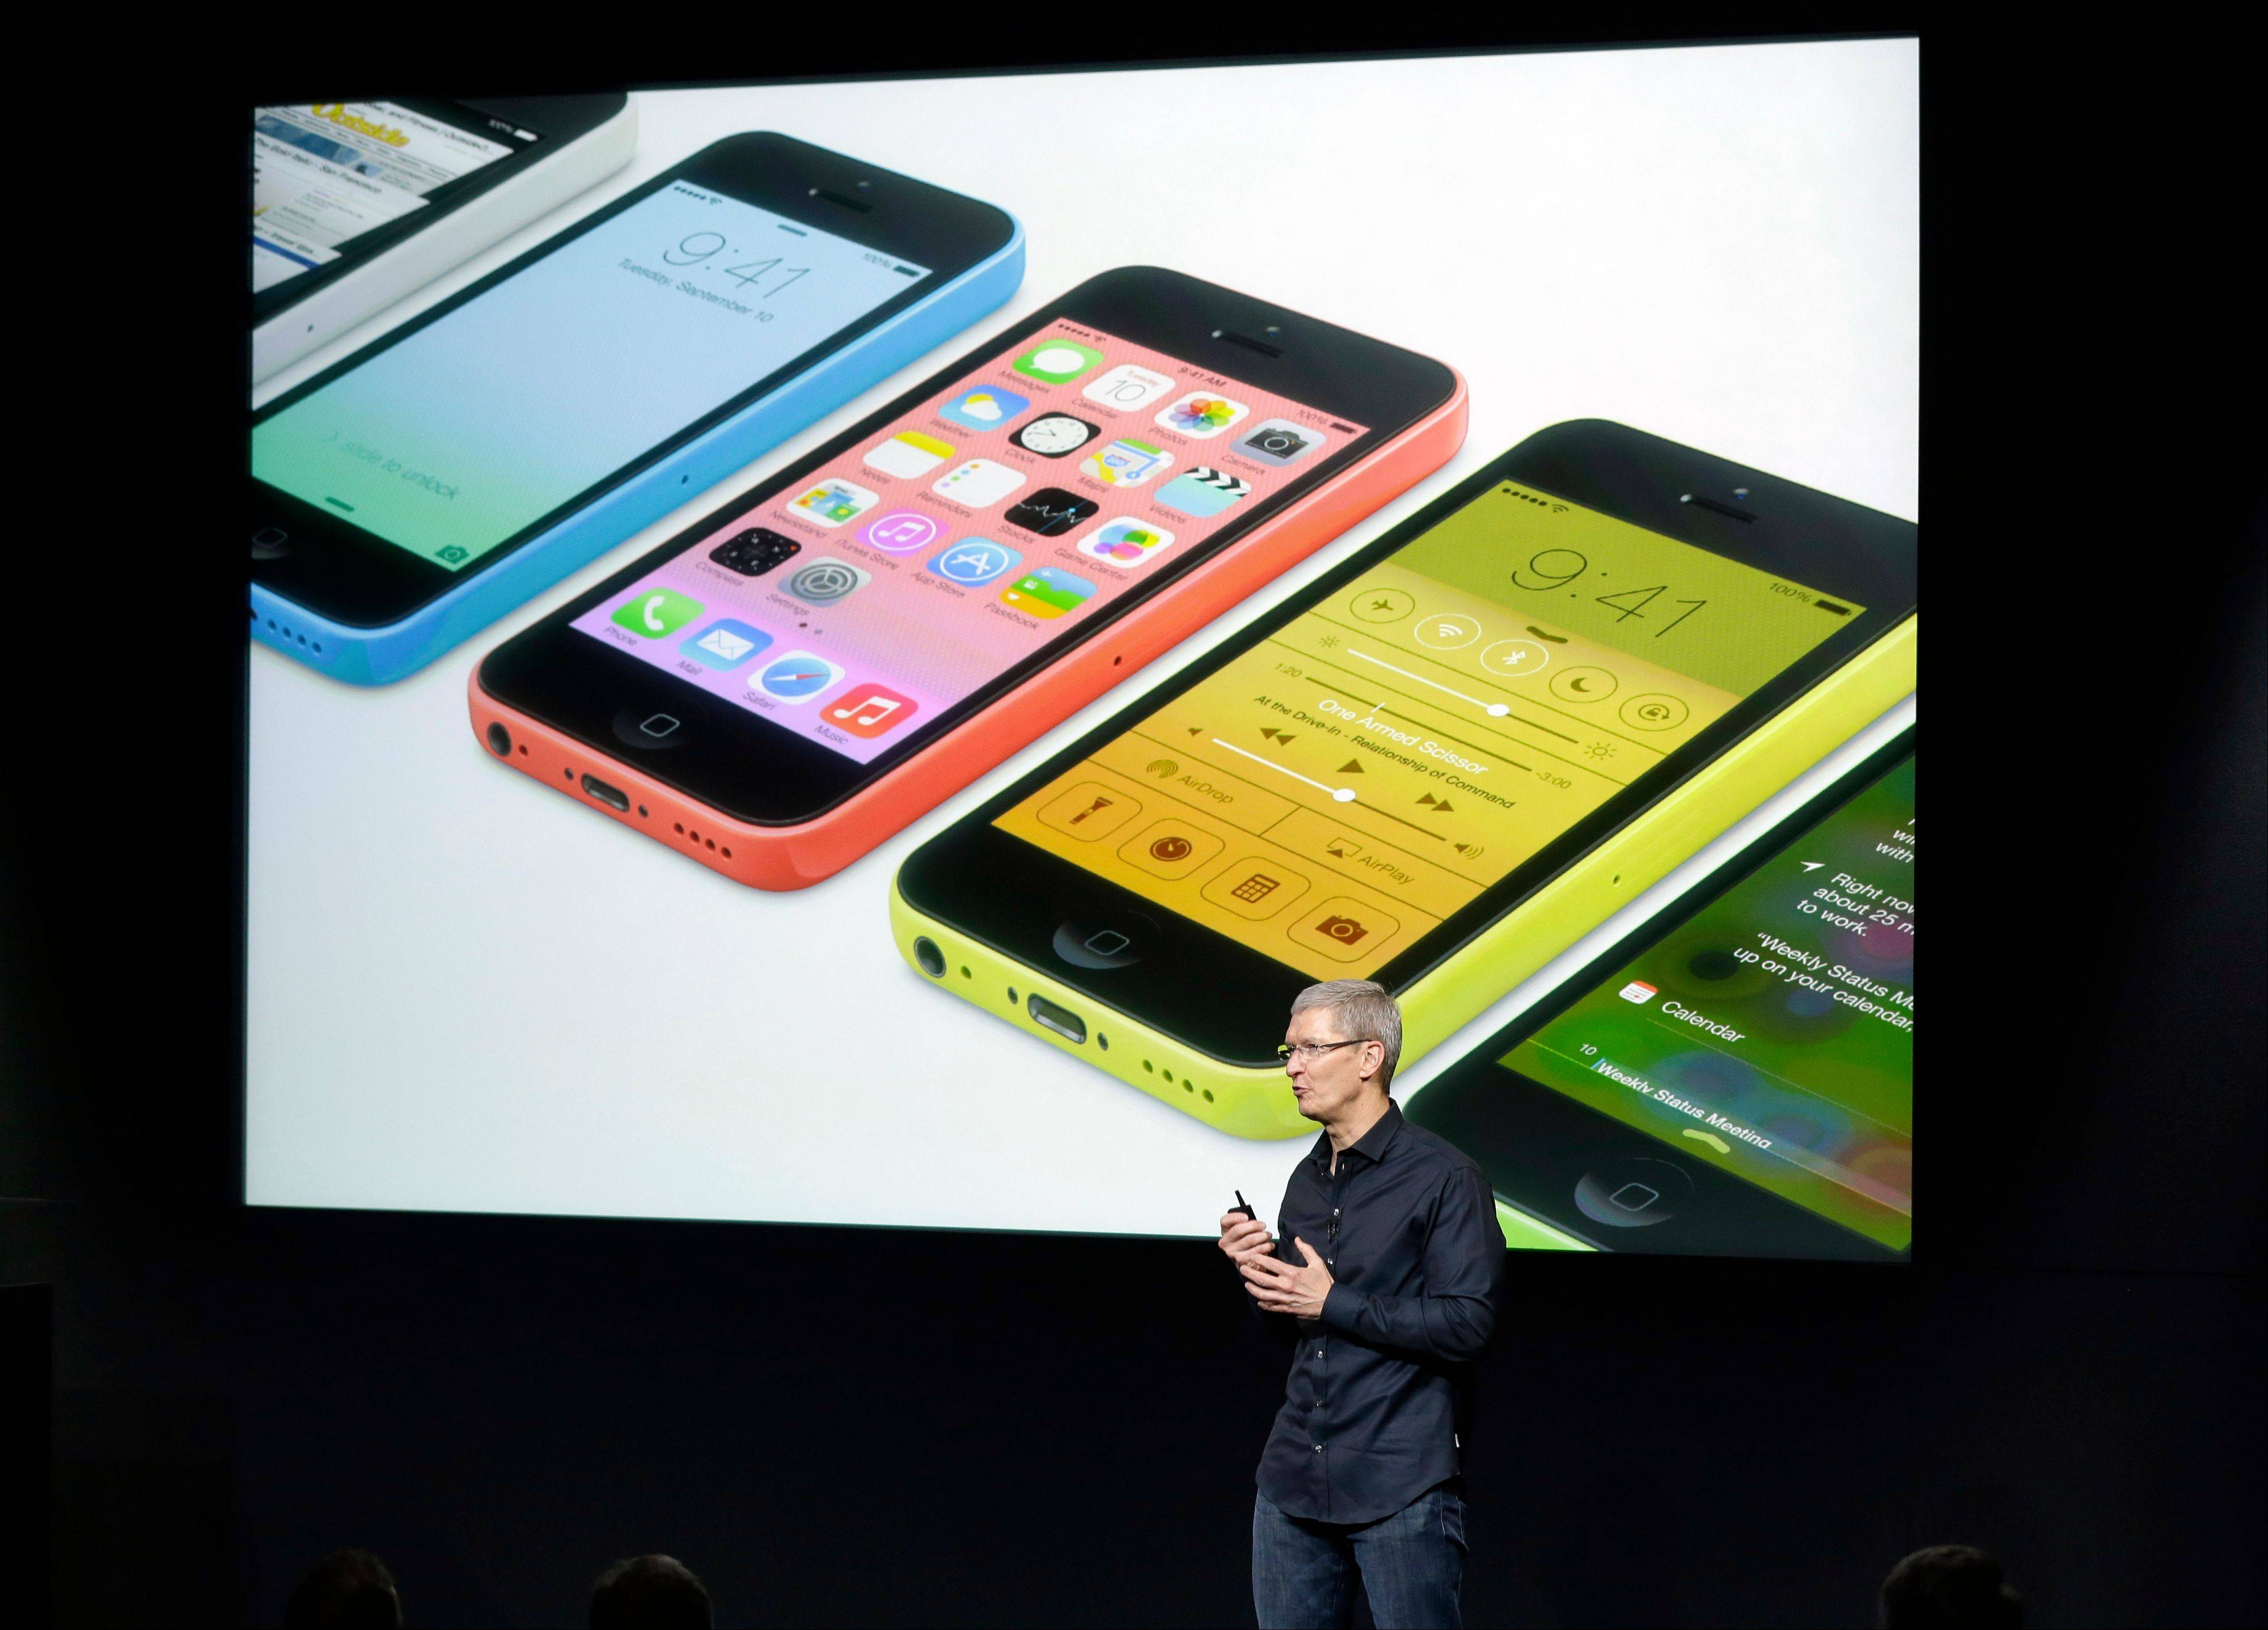 Tim Cook, CEO of Apple, speaks on stage during the introduction of the new iPhone 5c in Cupertino, Calif., Tuesday, Sept. 10, 2013.